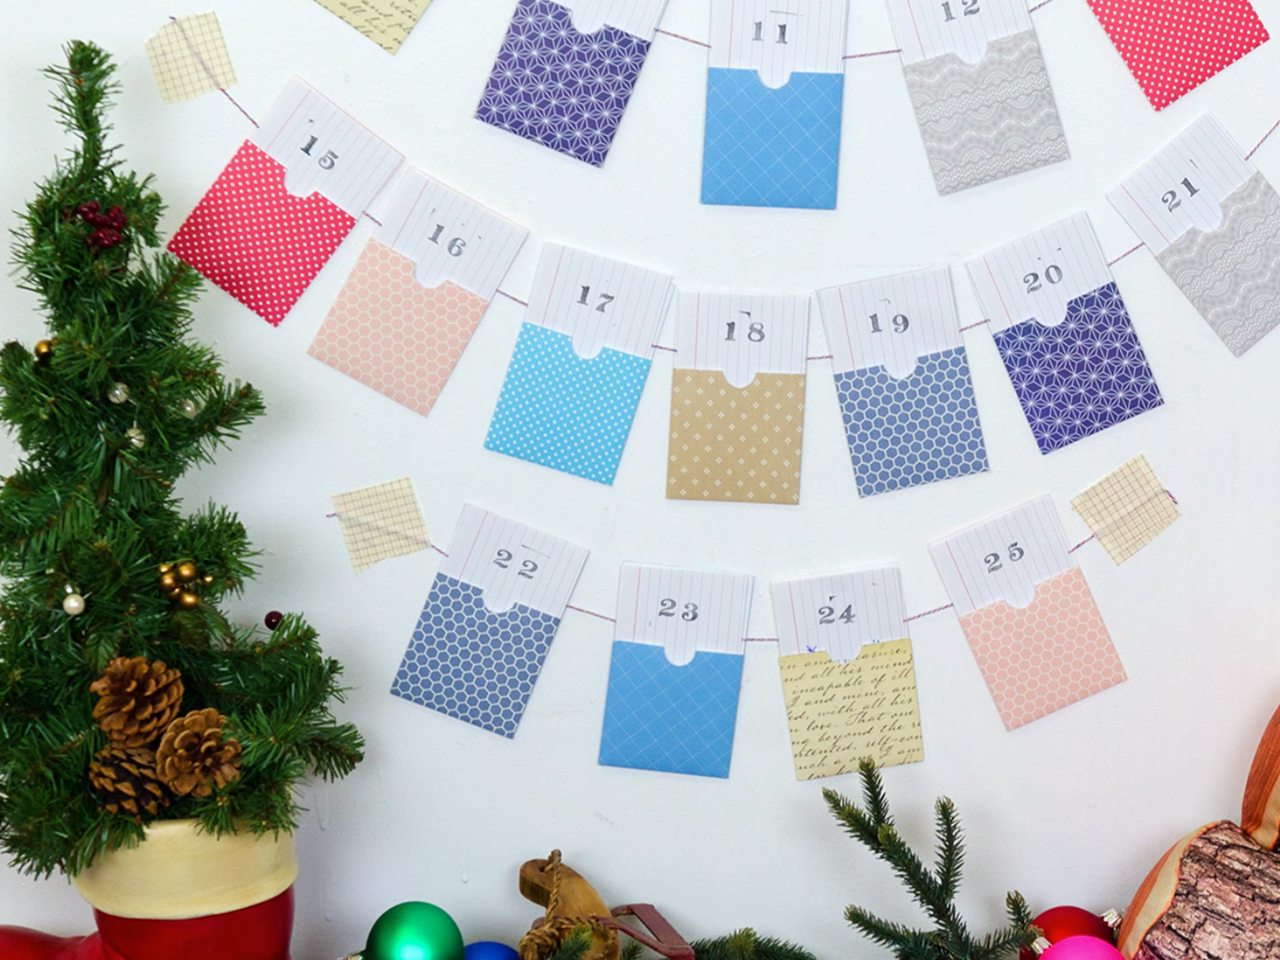 Crafting for kids: Advent calendar